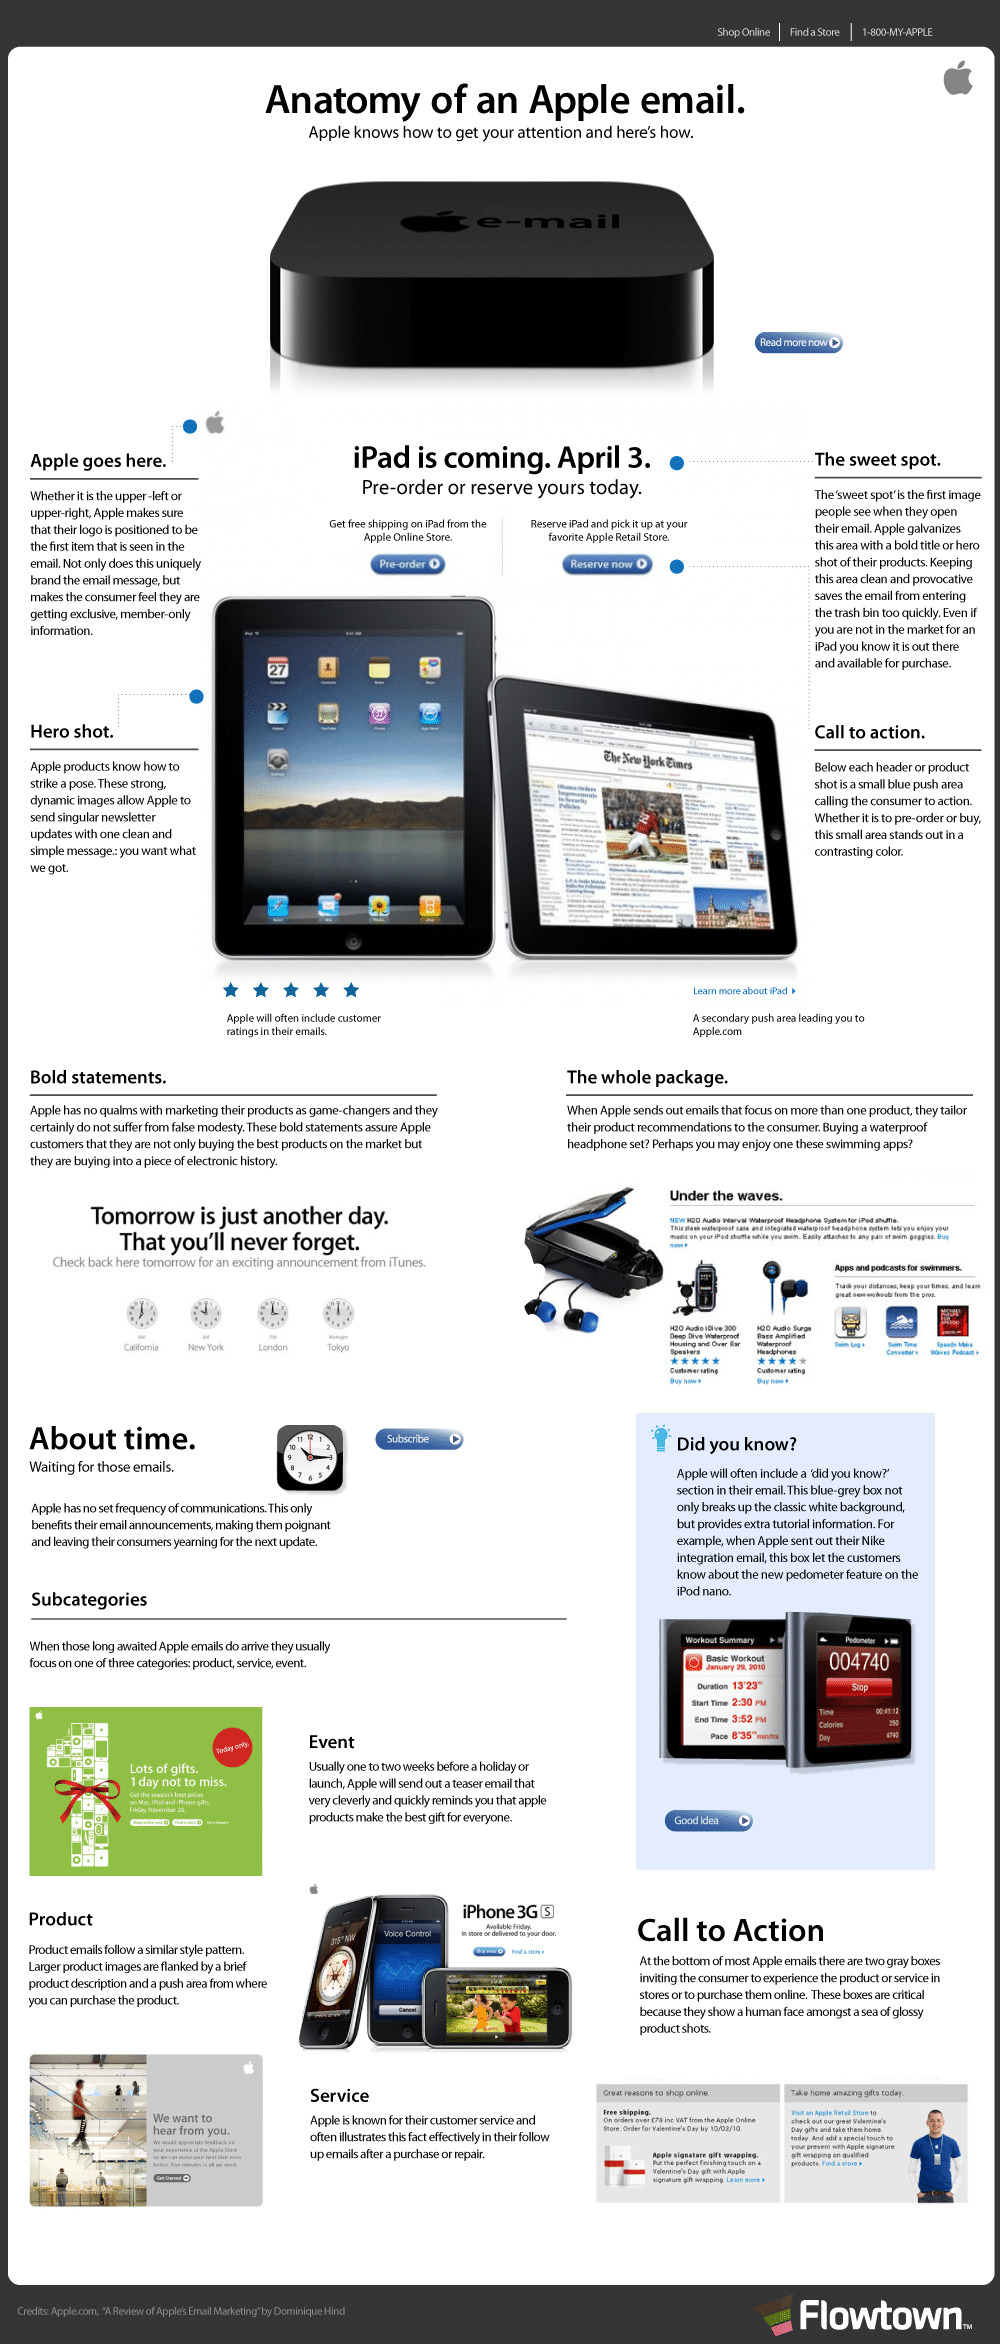 Formatting On An Apple Email